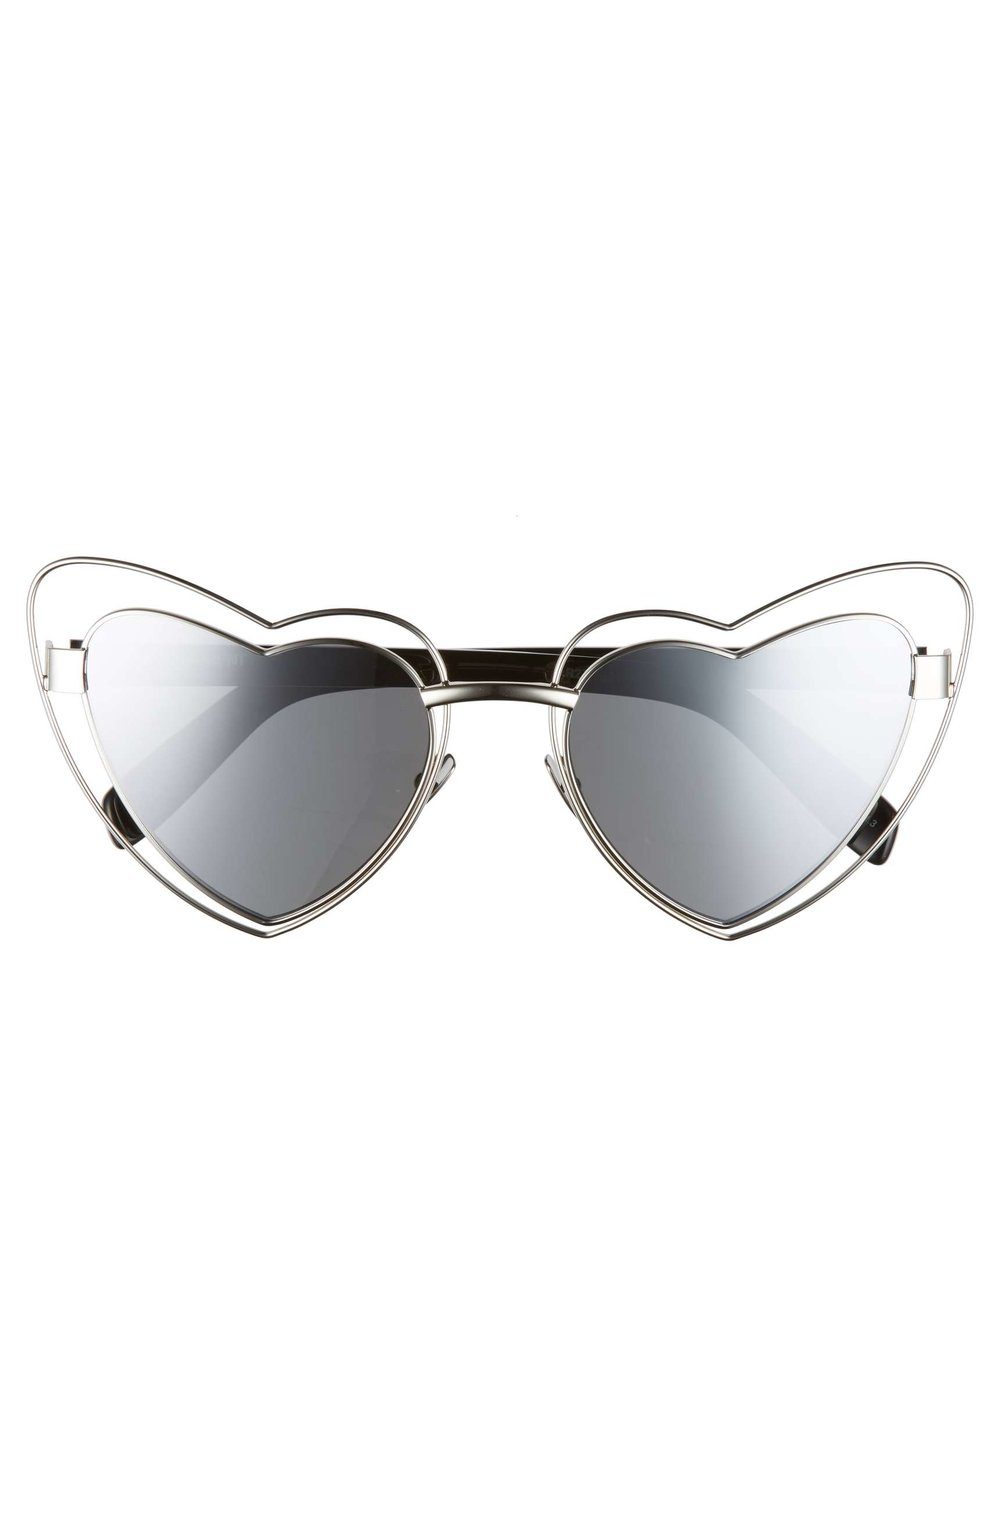 Saint Laurent Metal LouLou Glasses, $490